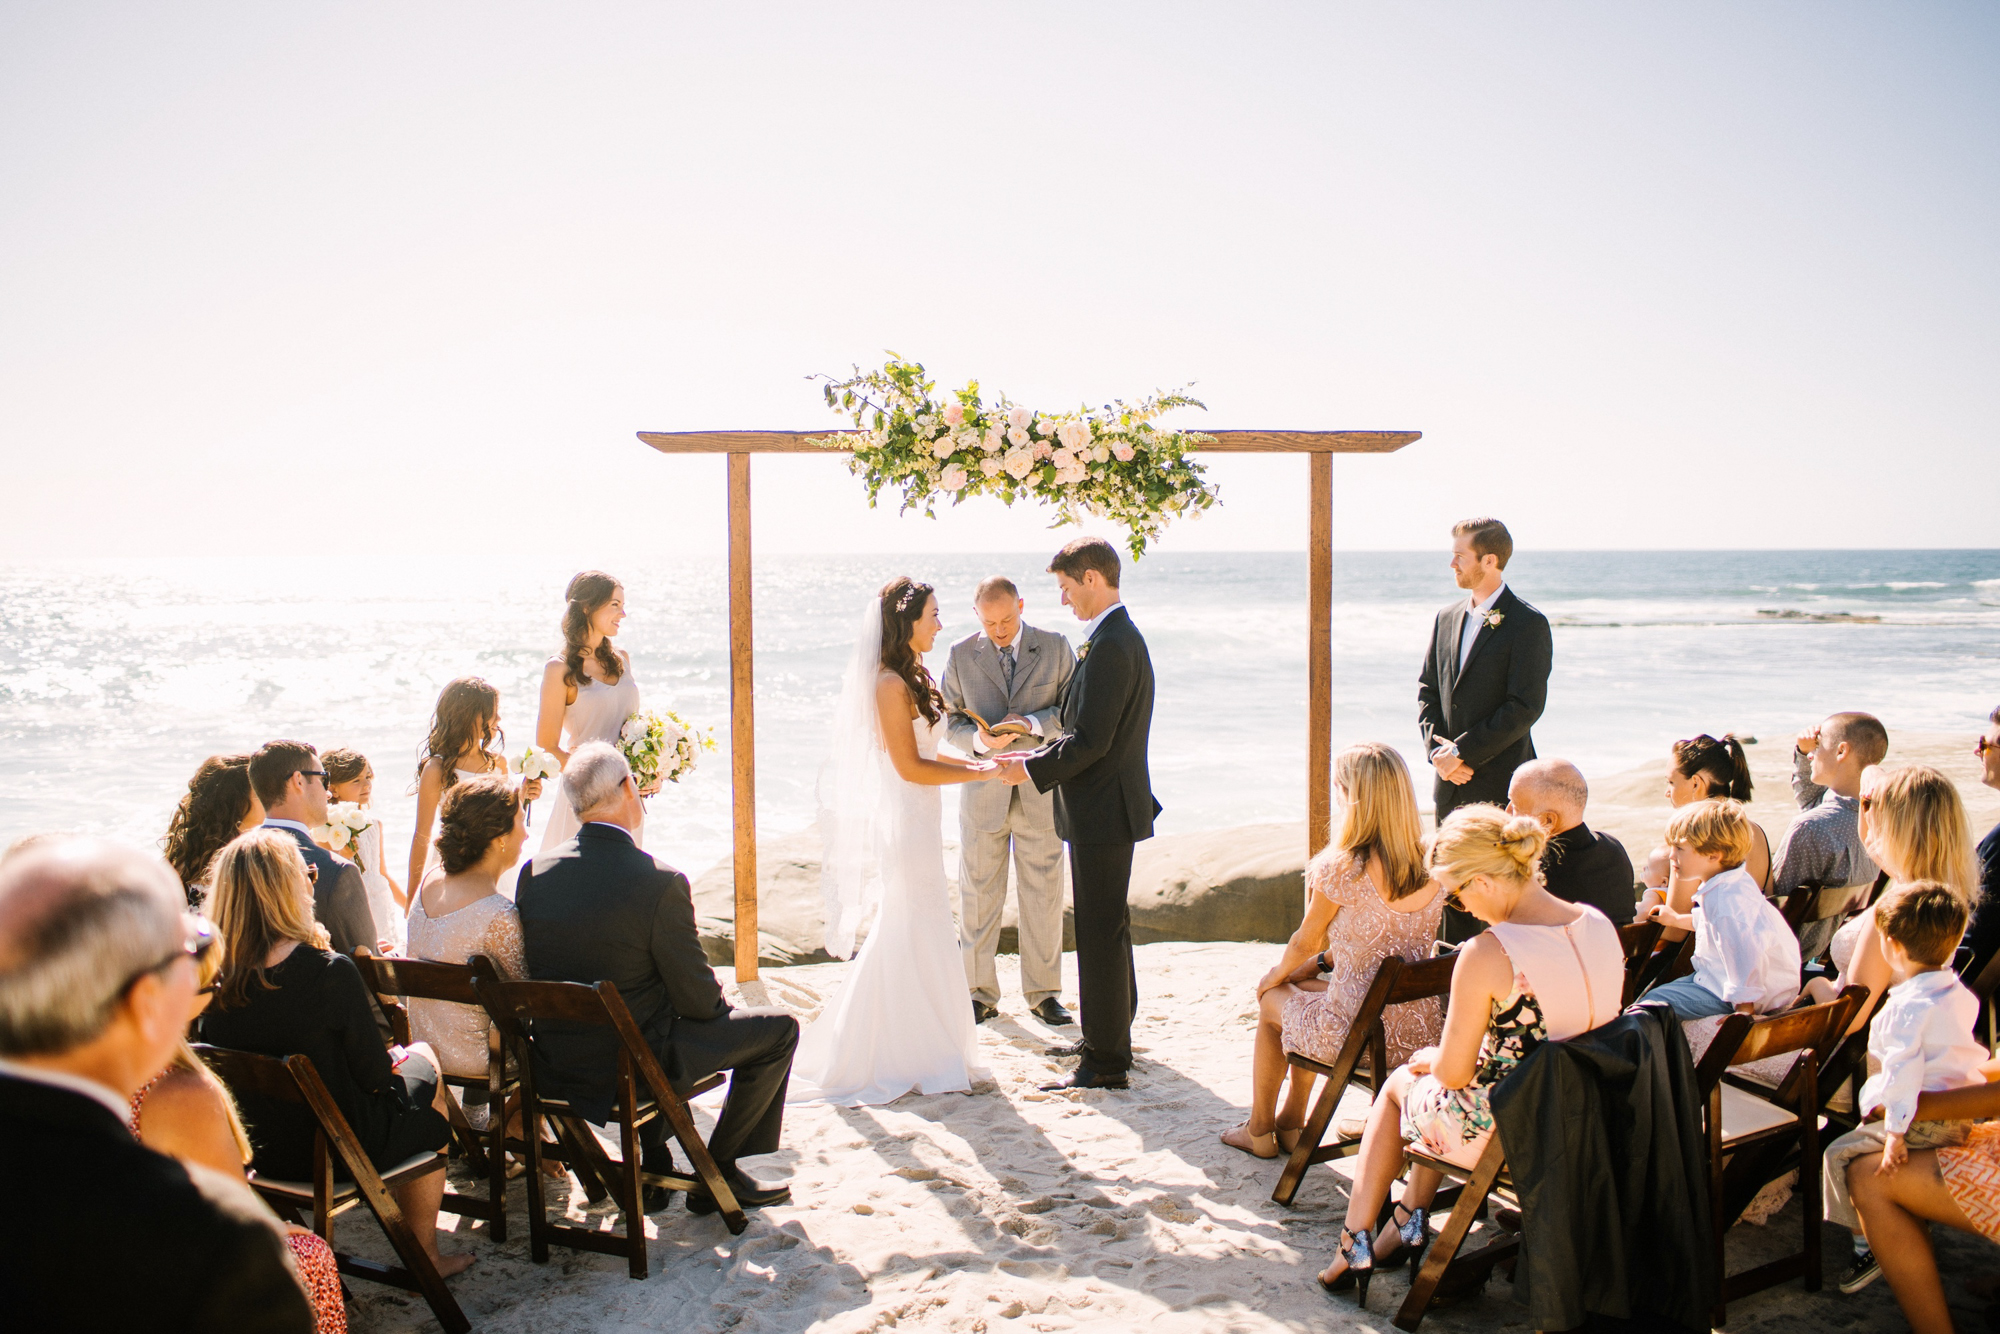 Chic & Simple Oceanfront Wedding - Olive Willow Designs